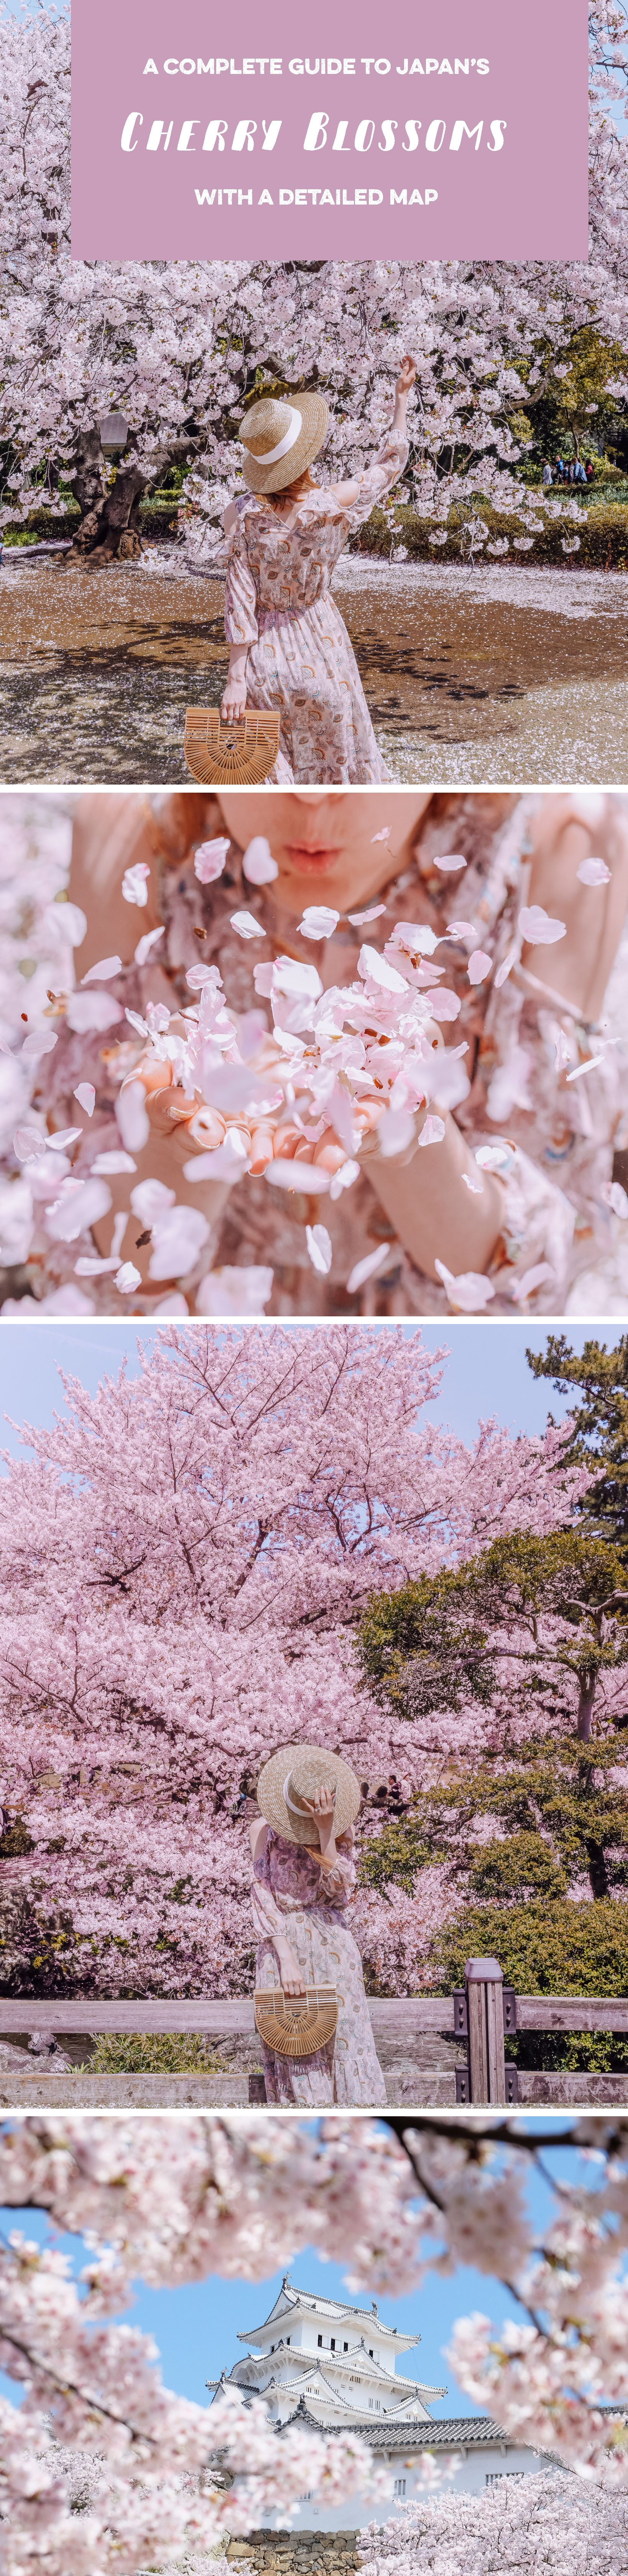 Japan Cherry Blossom Guide This Life Of Travel Cherry Blossom Japan Japan Japan Travel Destinations